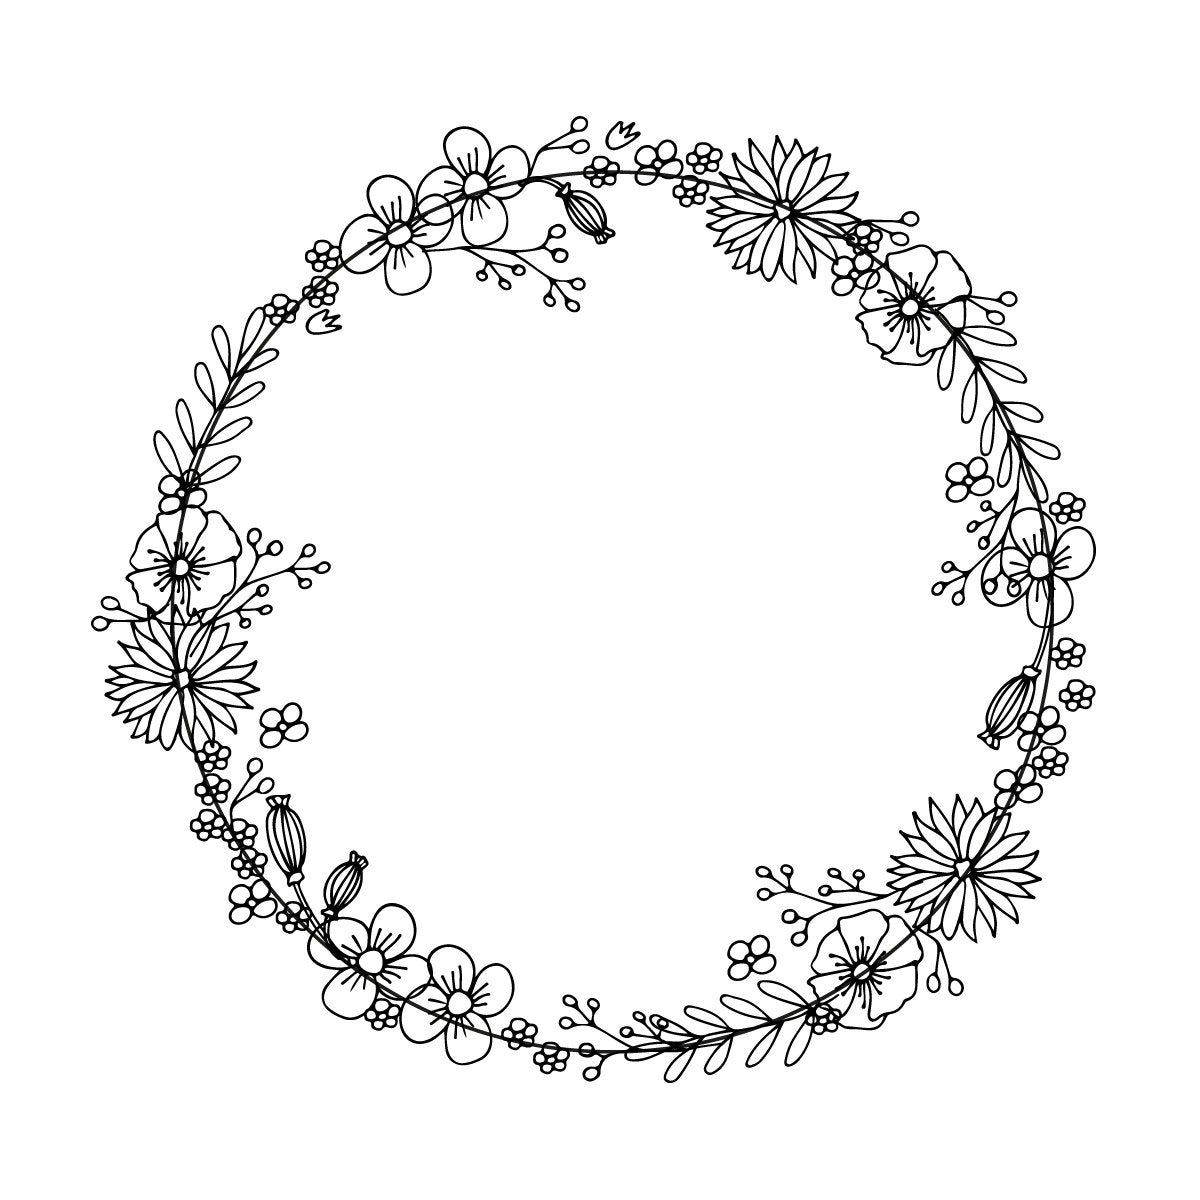 Photo of Round wreath, round frame, illustration, vector, doodle, graphic postcard, decorative with love, ornament, floral border